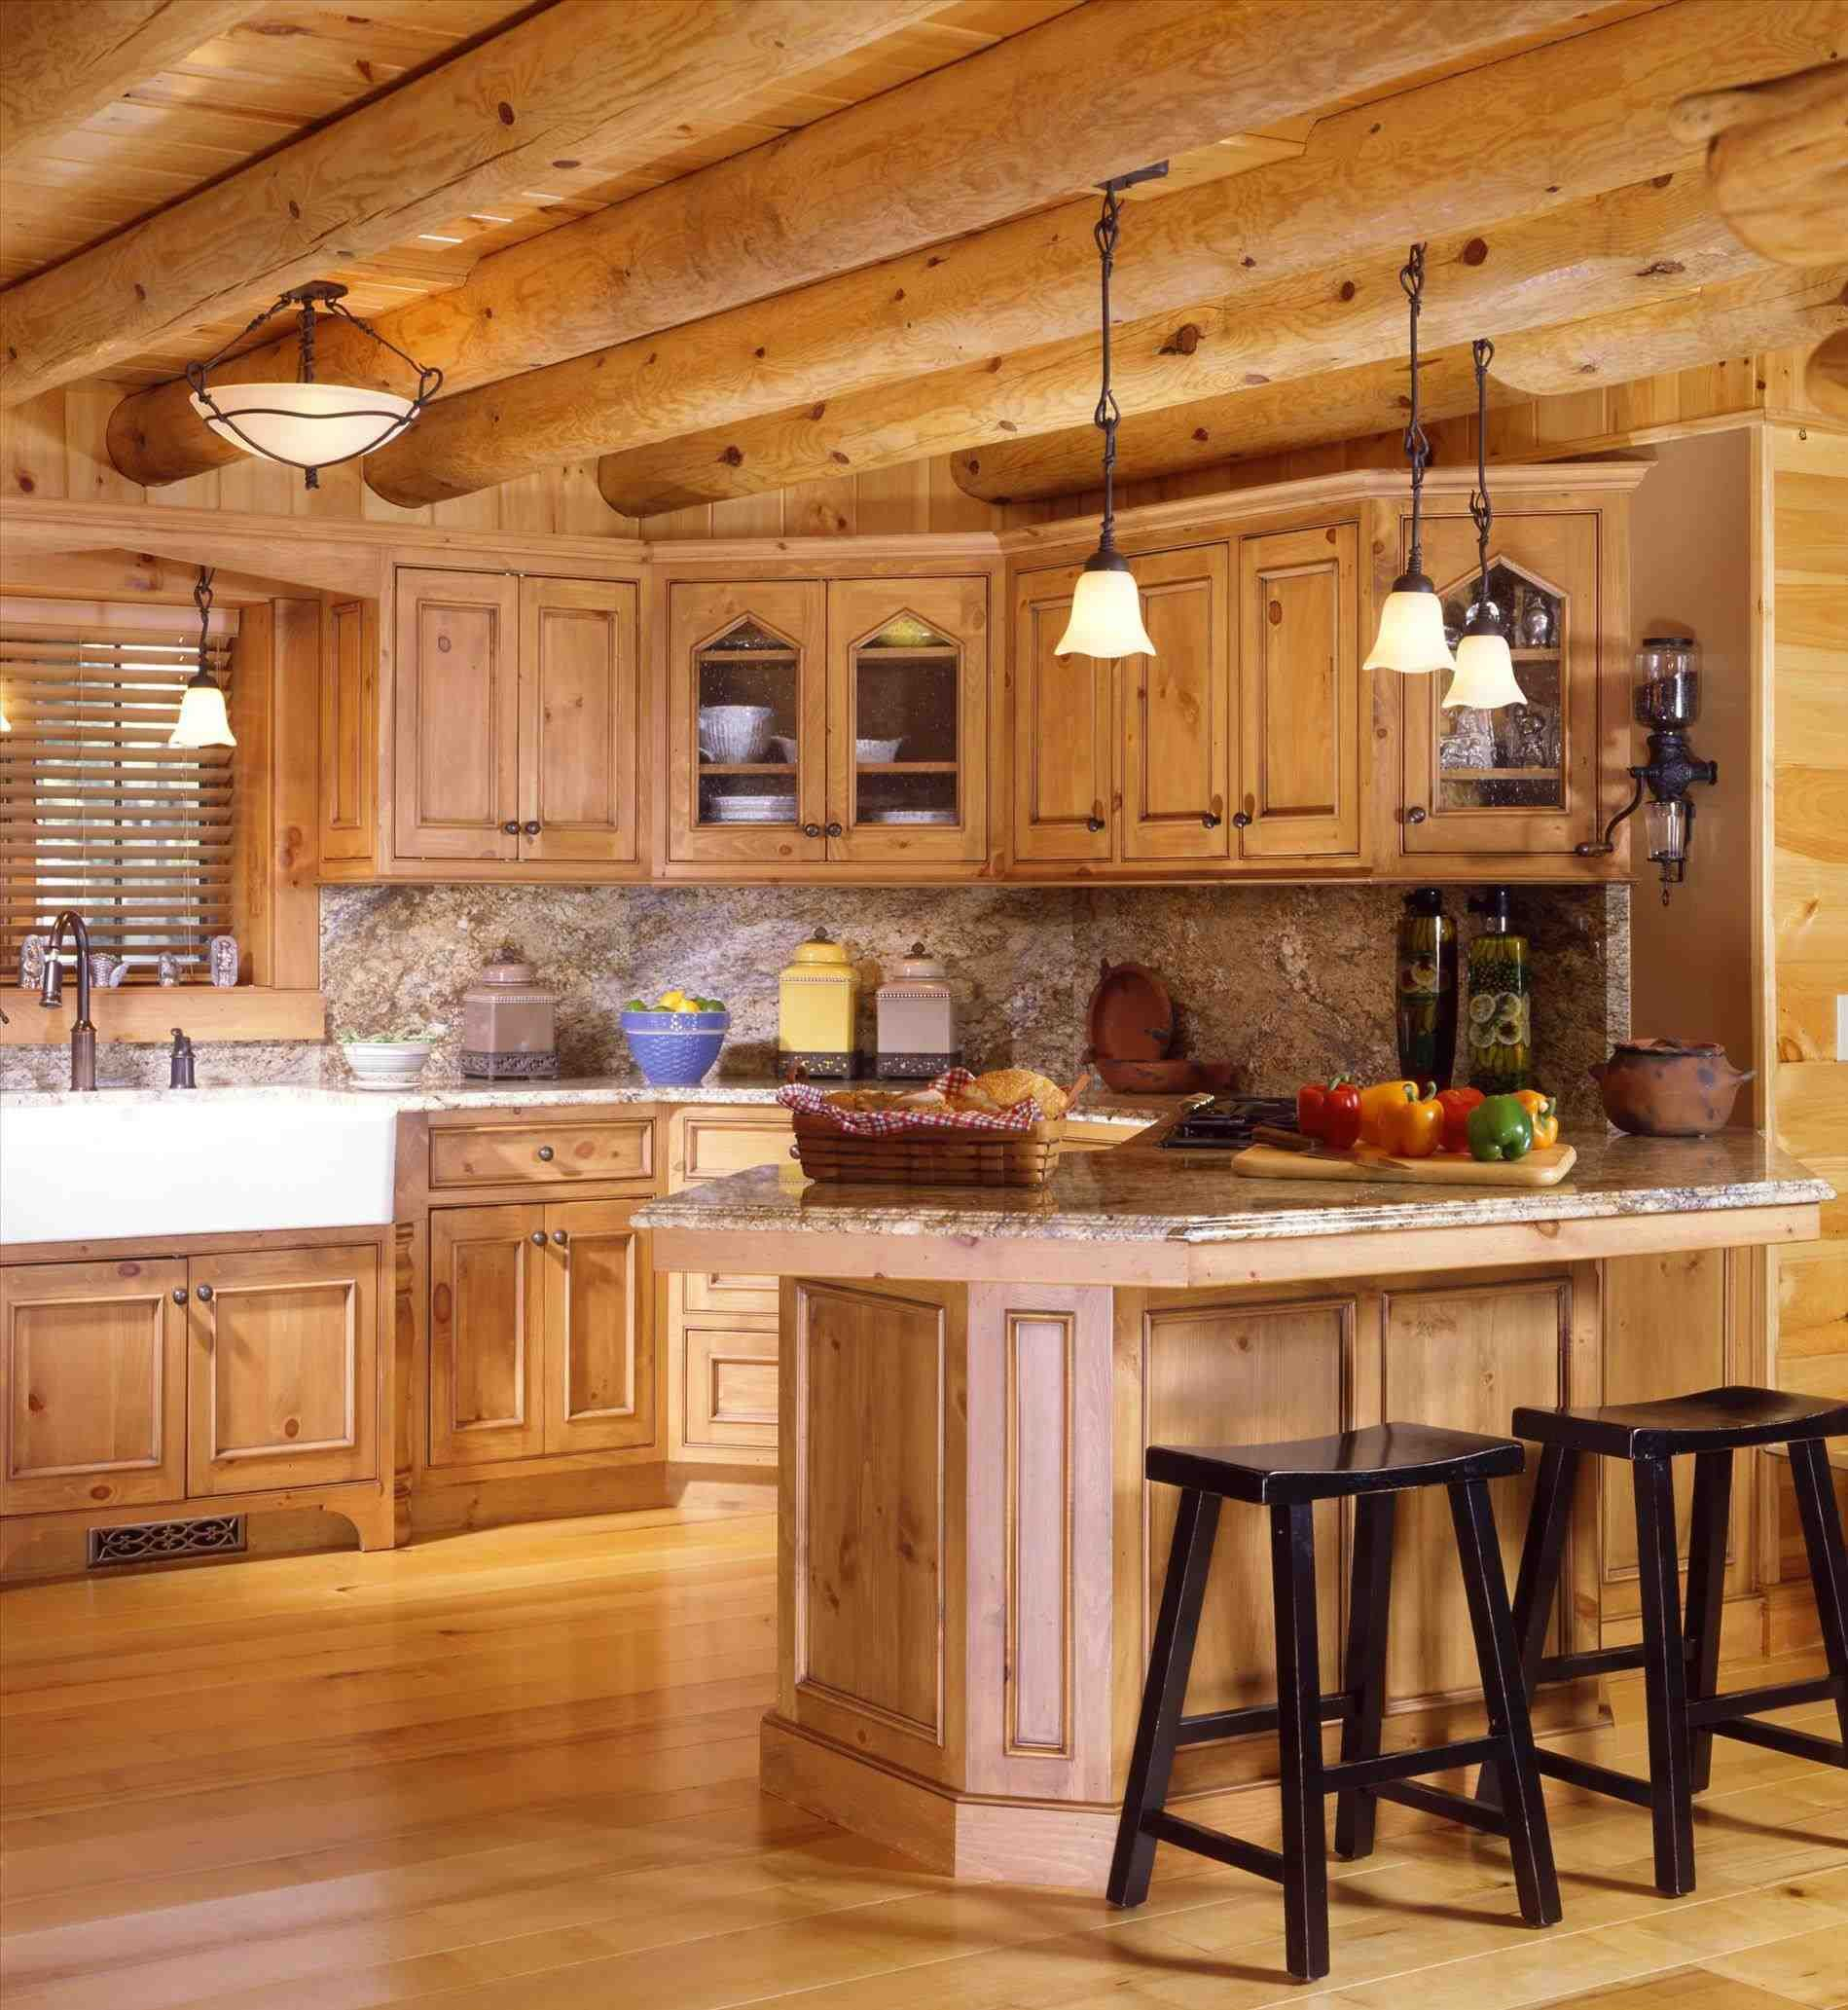 Haus Design Weltner American House Inside In 2018 Home Decor Ideas Log Home